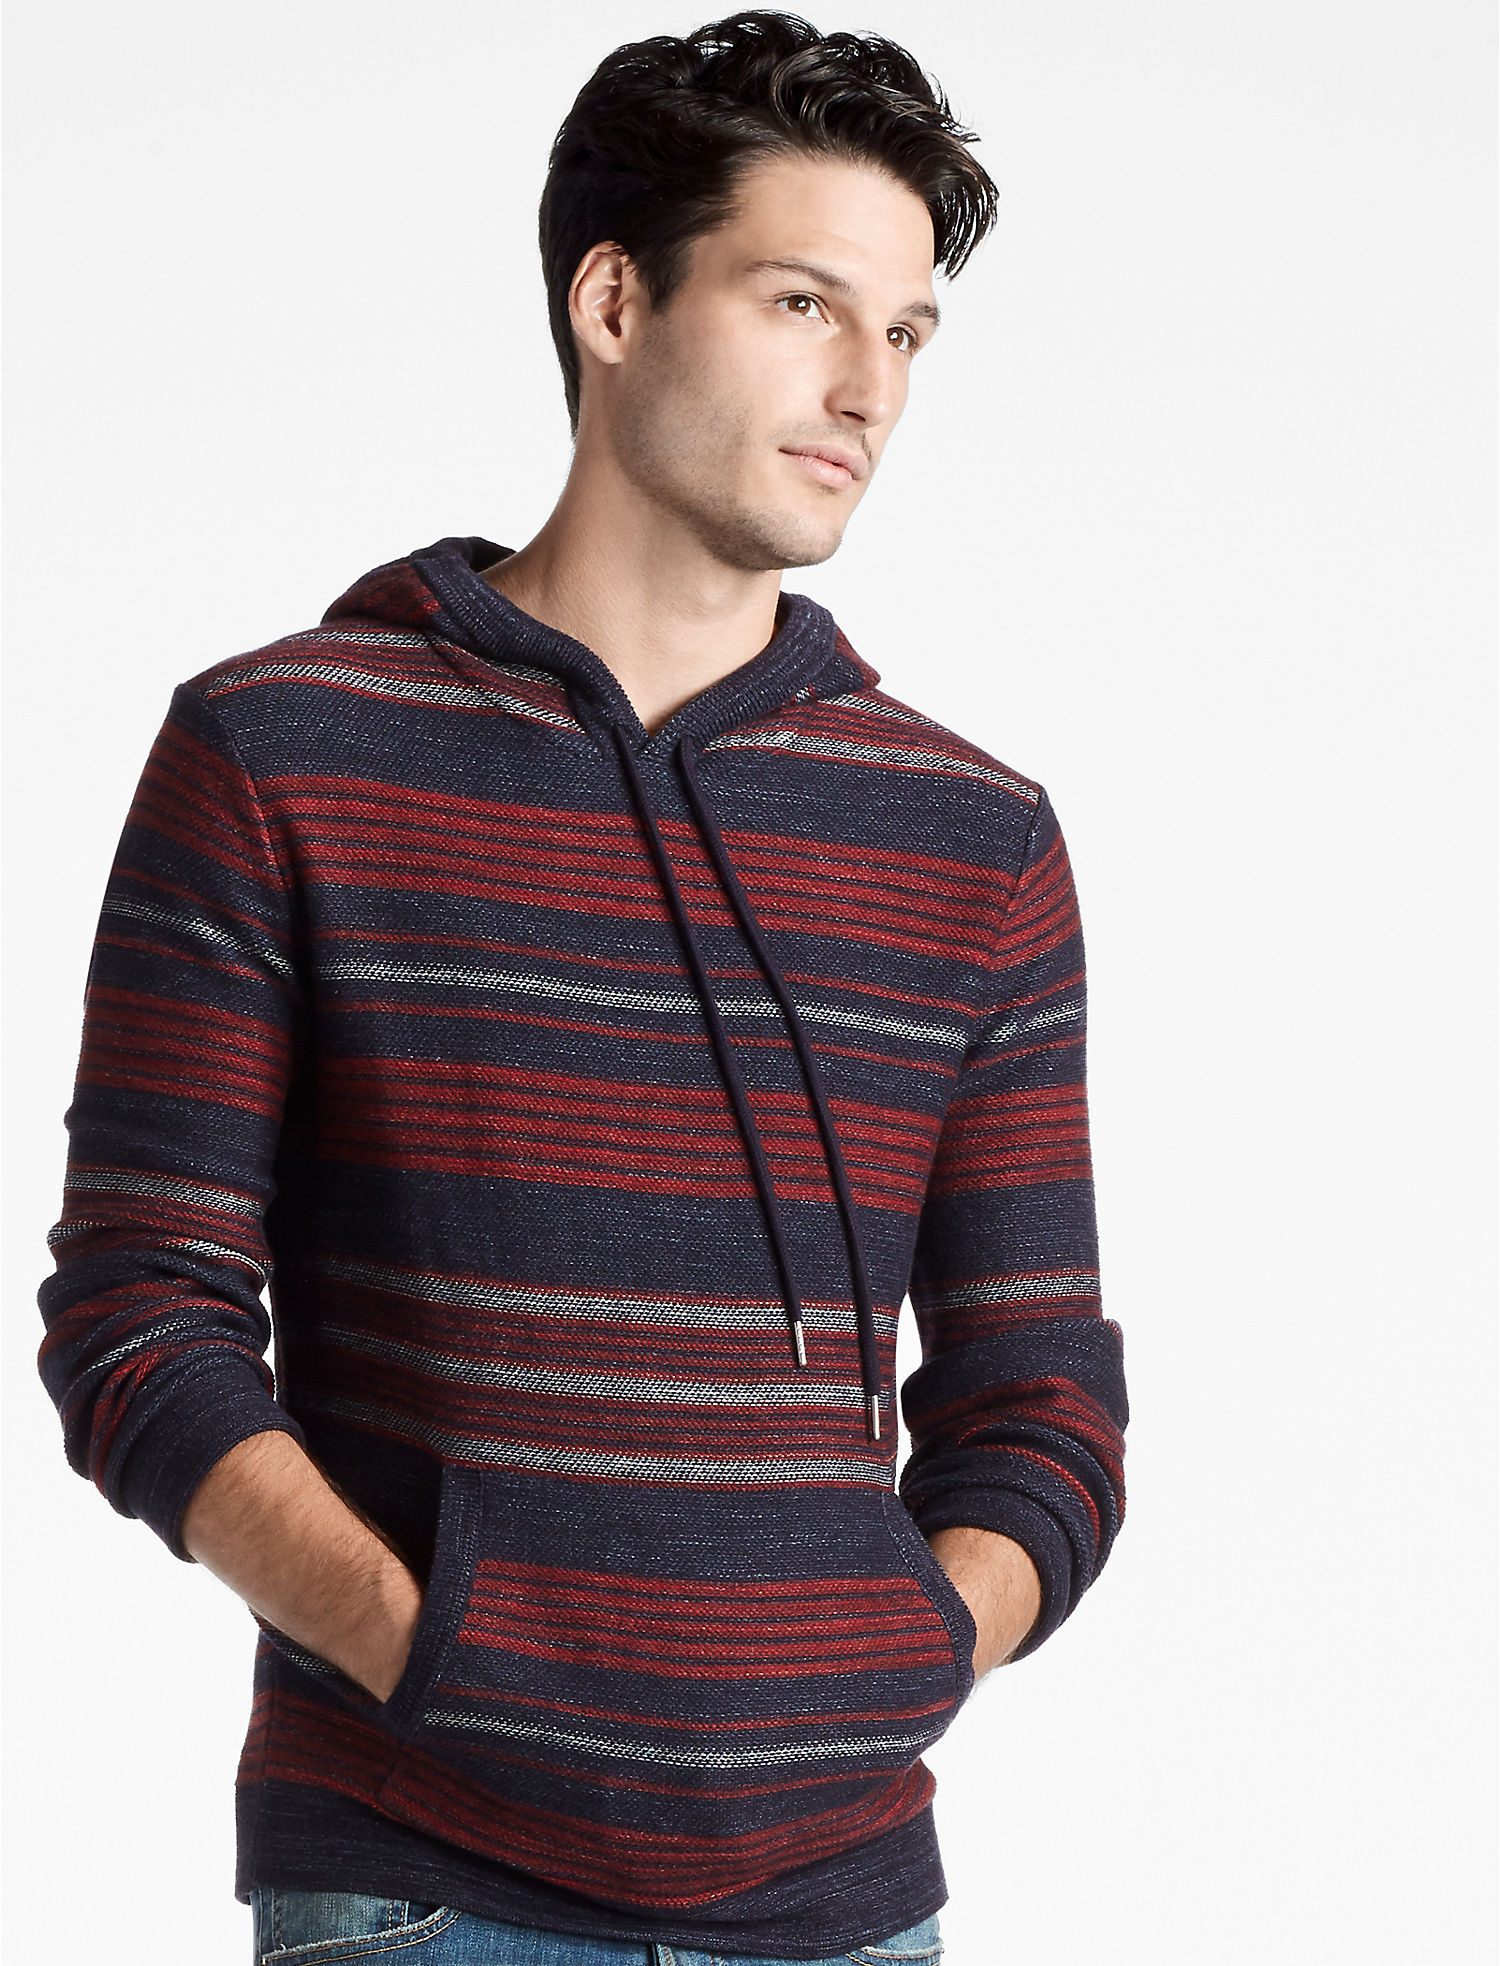 HERITAGE STRIPED HOODED SWEATER - Lucky Brand 2.0